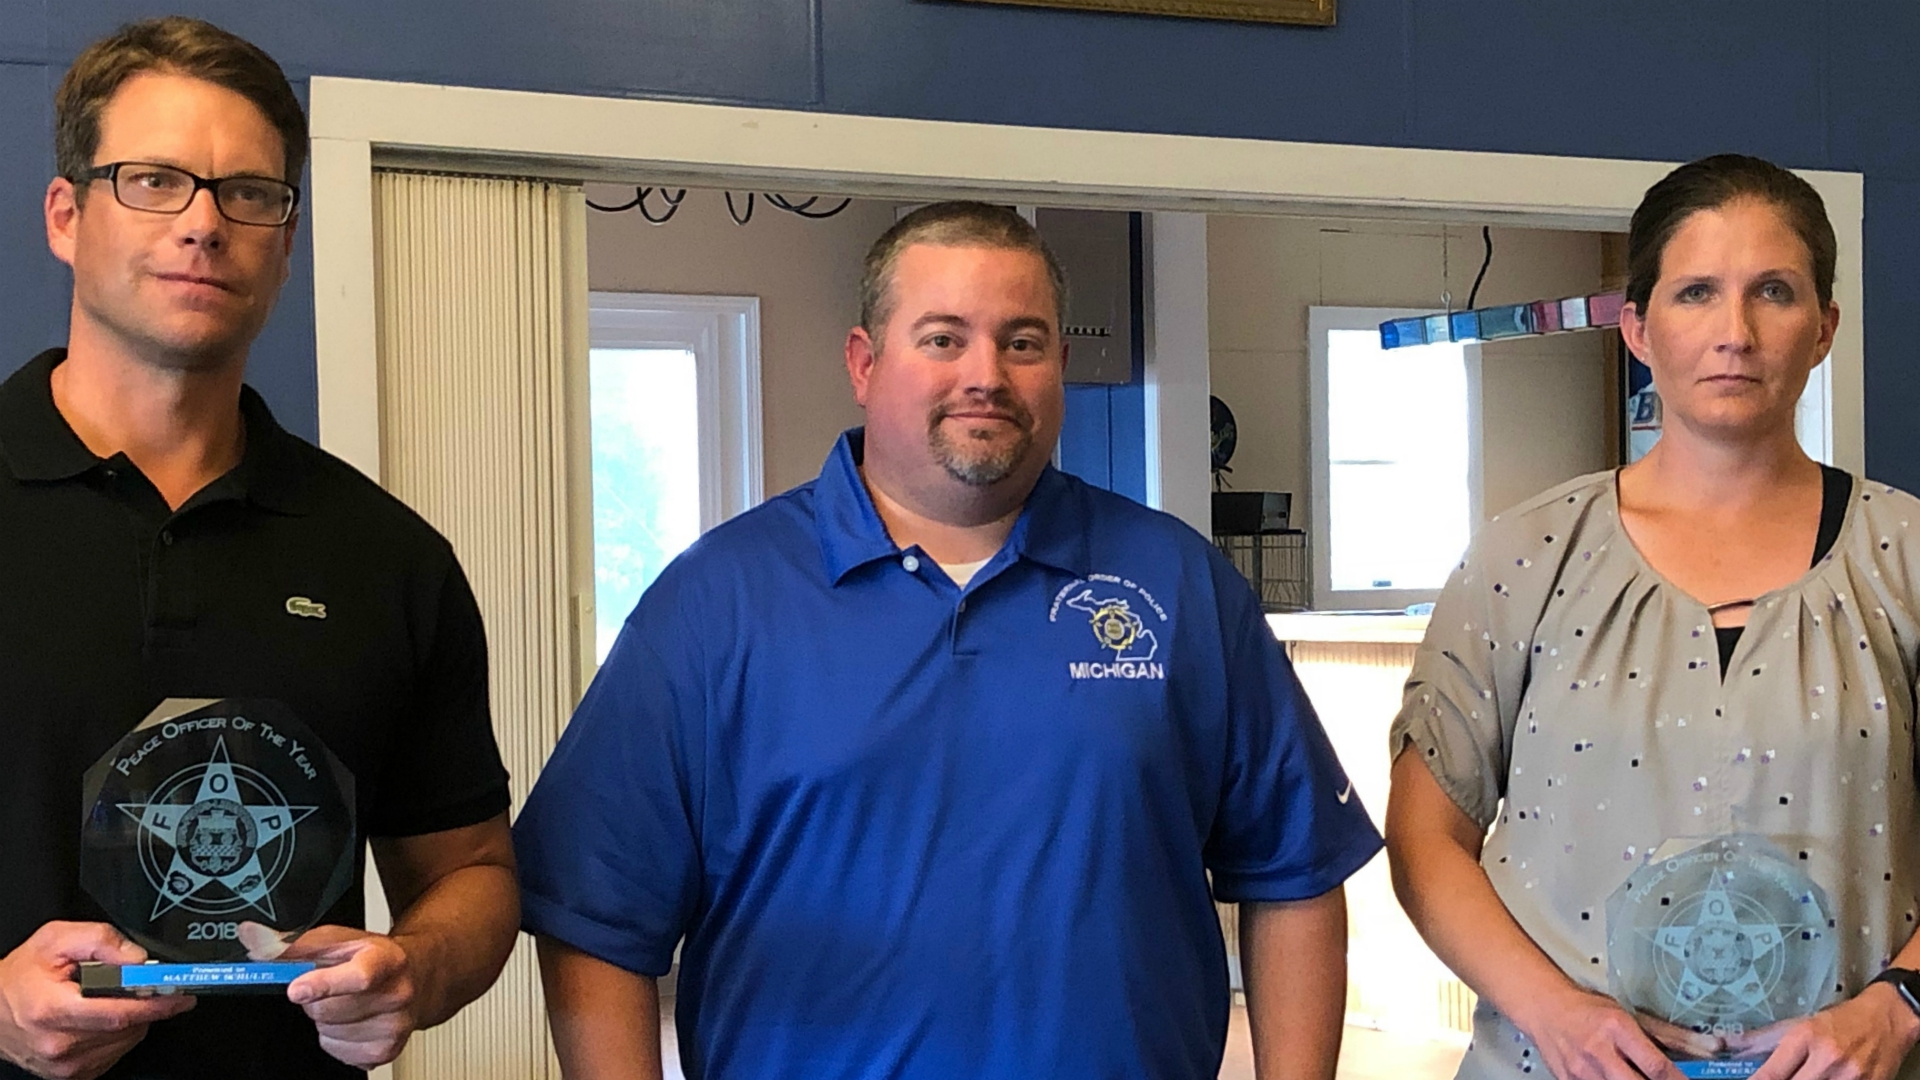 michigan fraternal order of police peace officers of the year 080918_1533845282118.jpg.jpg